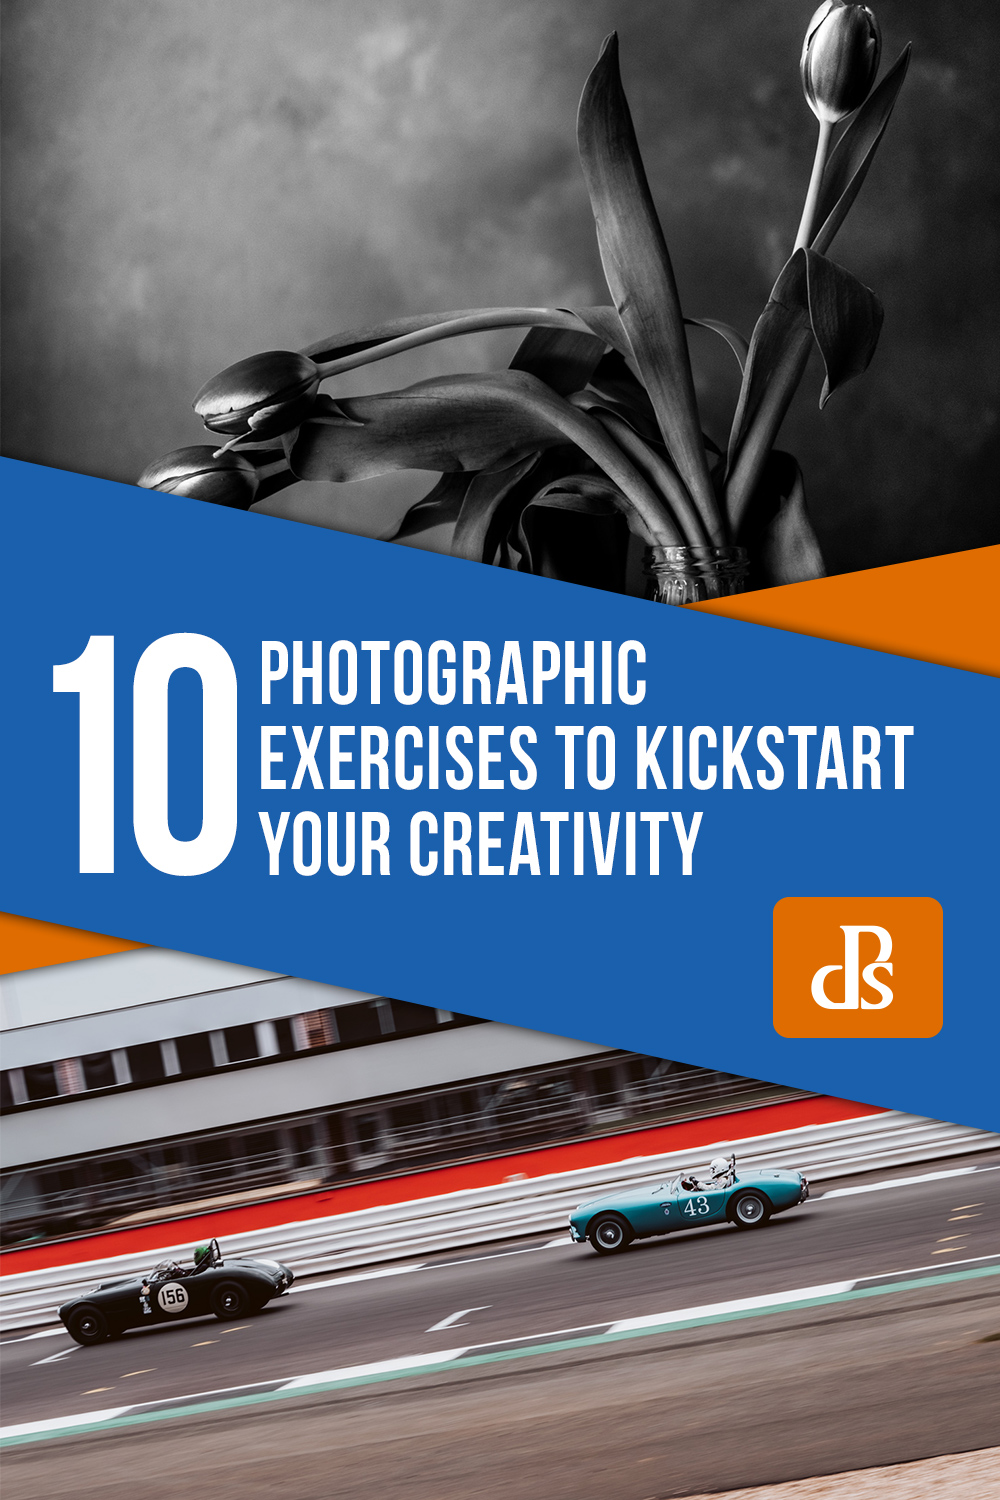 photographic-exercises-to-kickstart-your-creativity